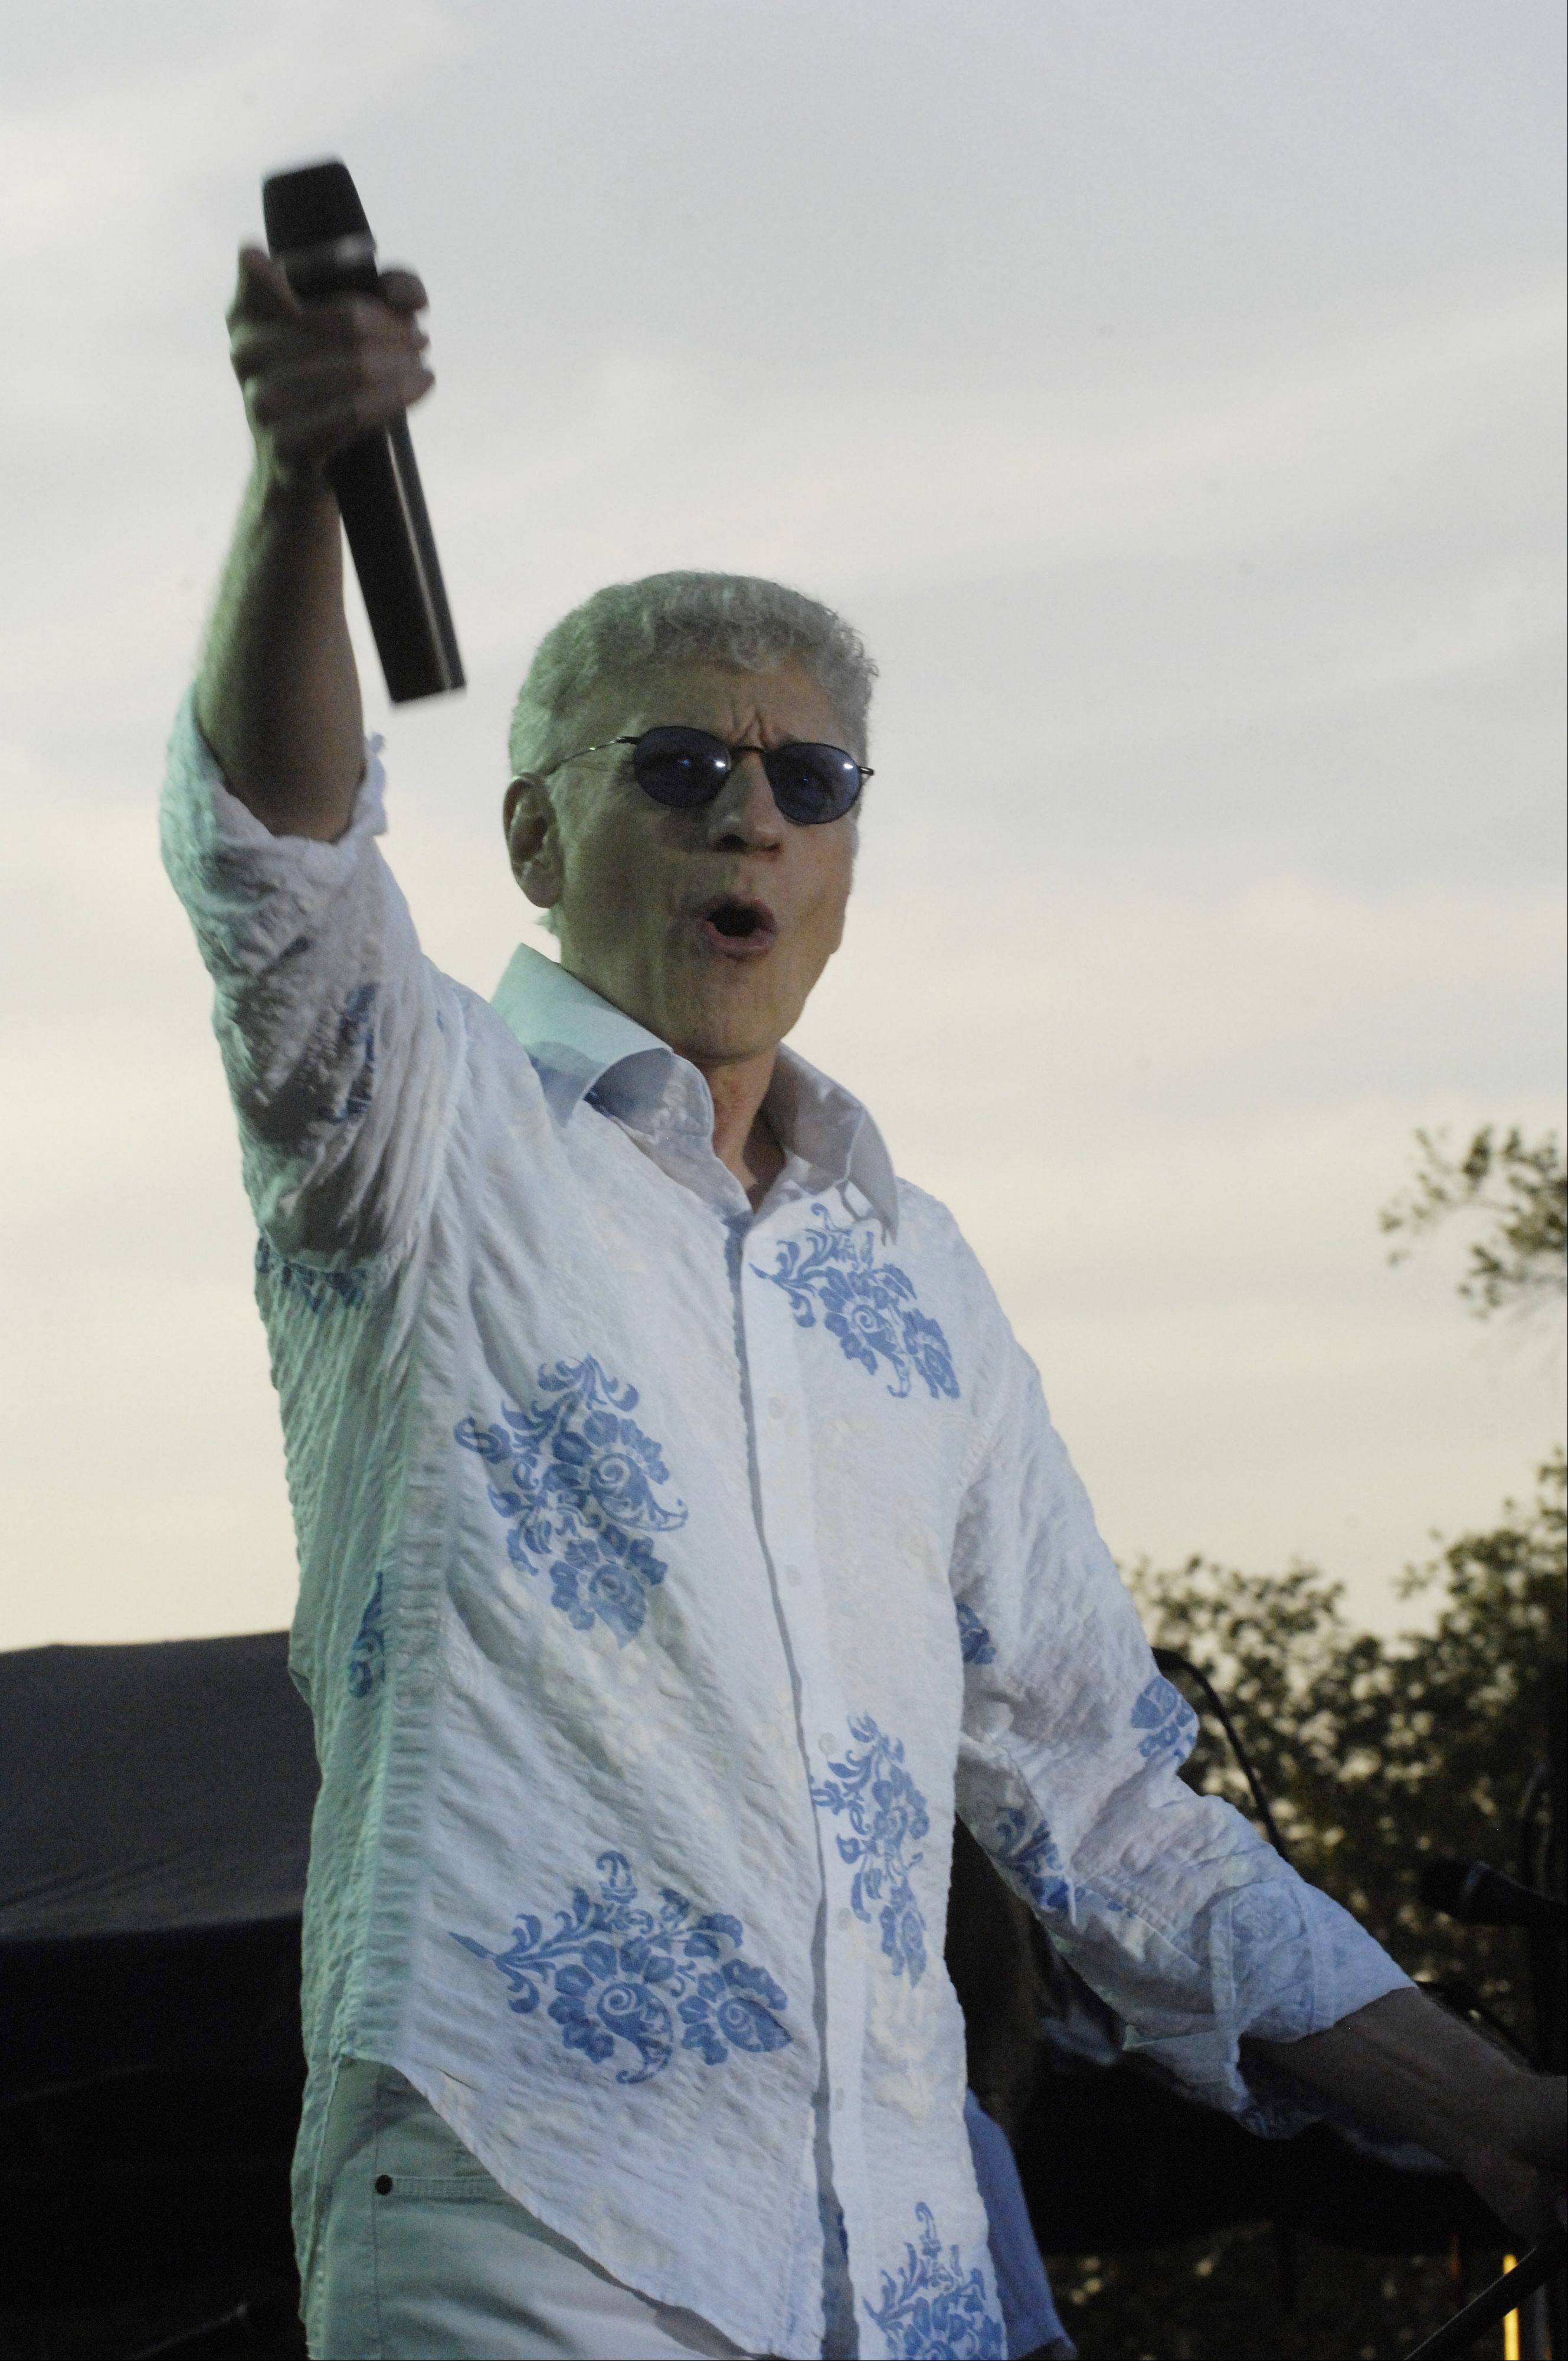 Dennis DeYoung greets the audience at Tuesday night's concert in Elk Grove Village.